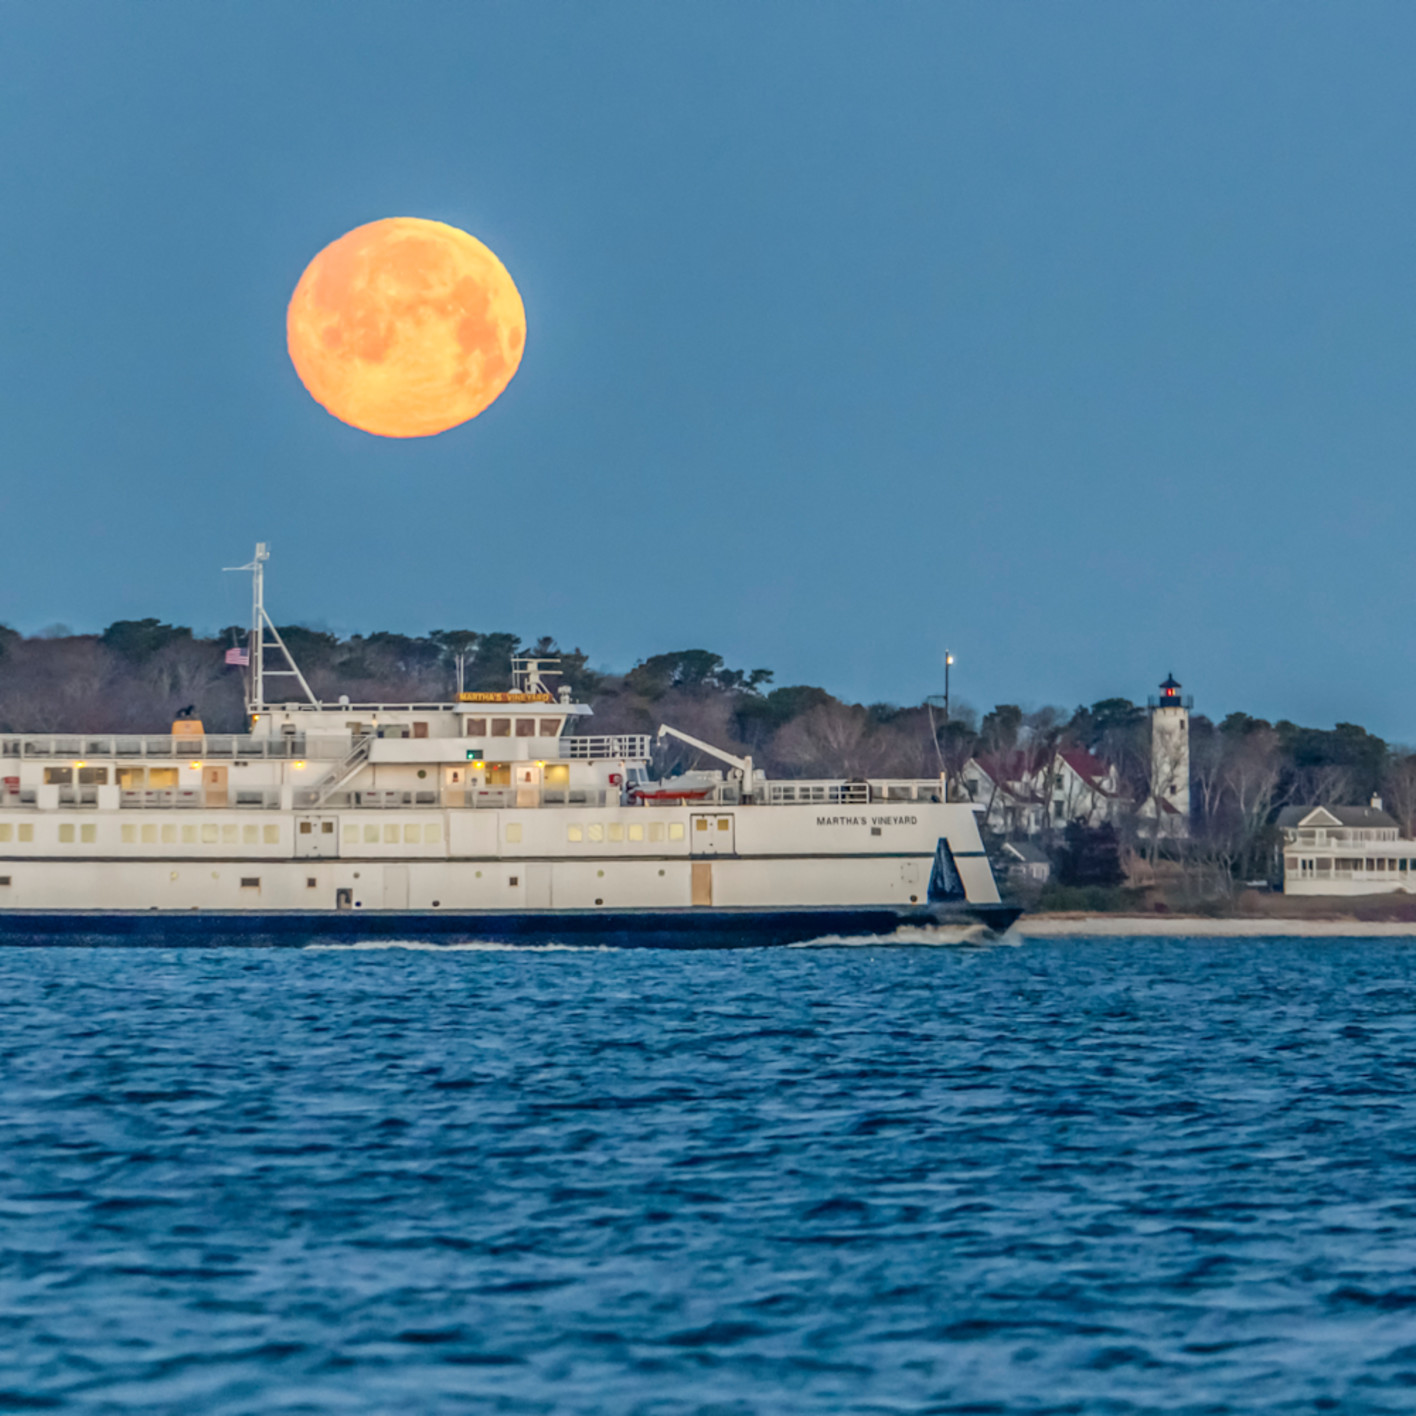 Steamship ferry snow moon zyuqui